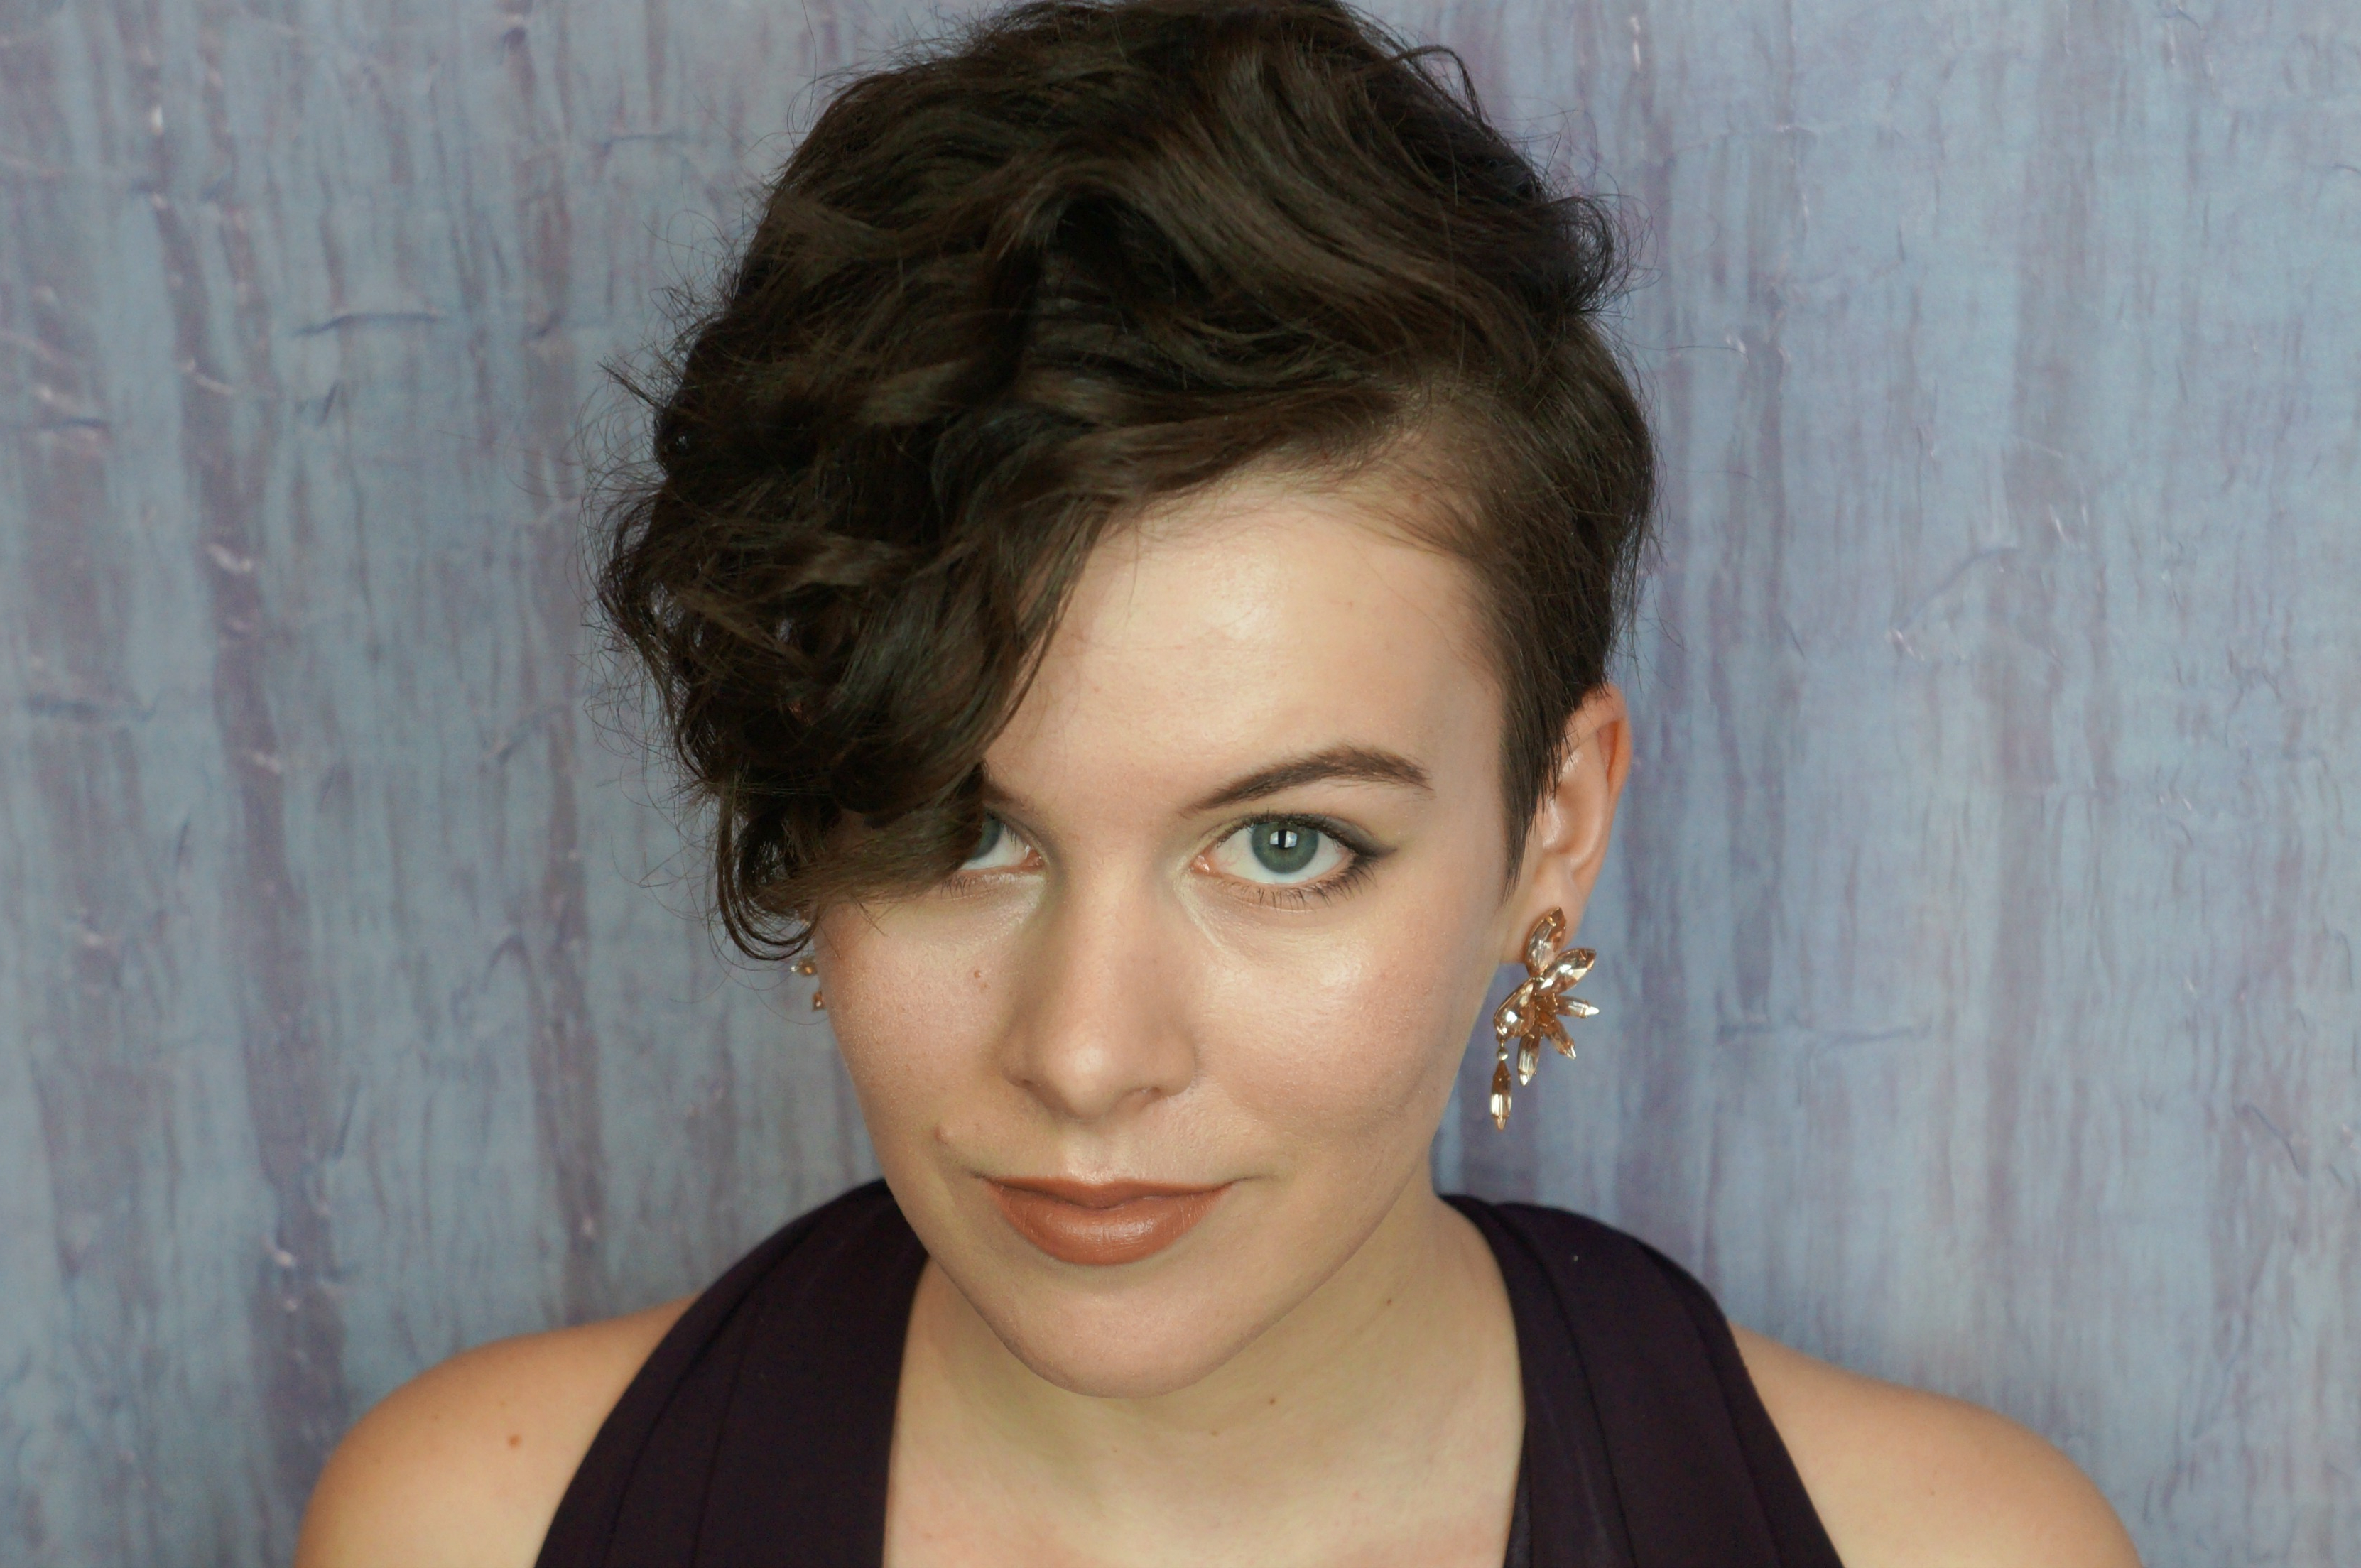 4 Short Hairstyles For Prom That Prove Pixie Cuts Can Be Extremely Glam Within Sleeked Down Pixie Hairstyles With Texturizing (View 10 of 20)